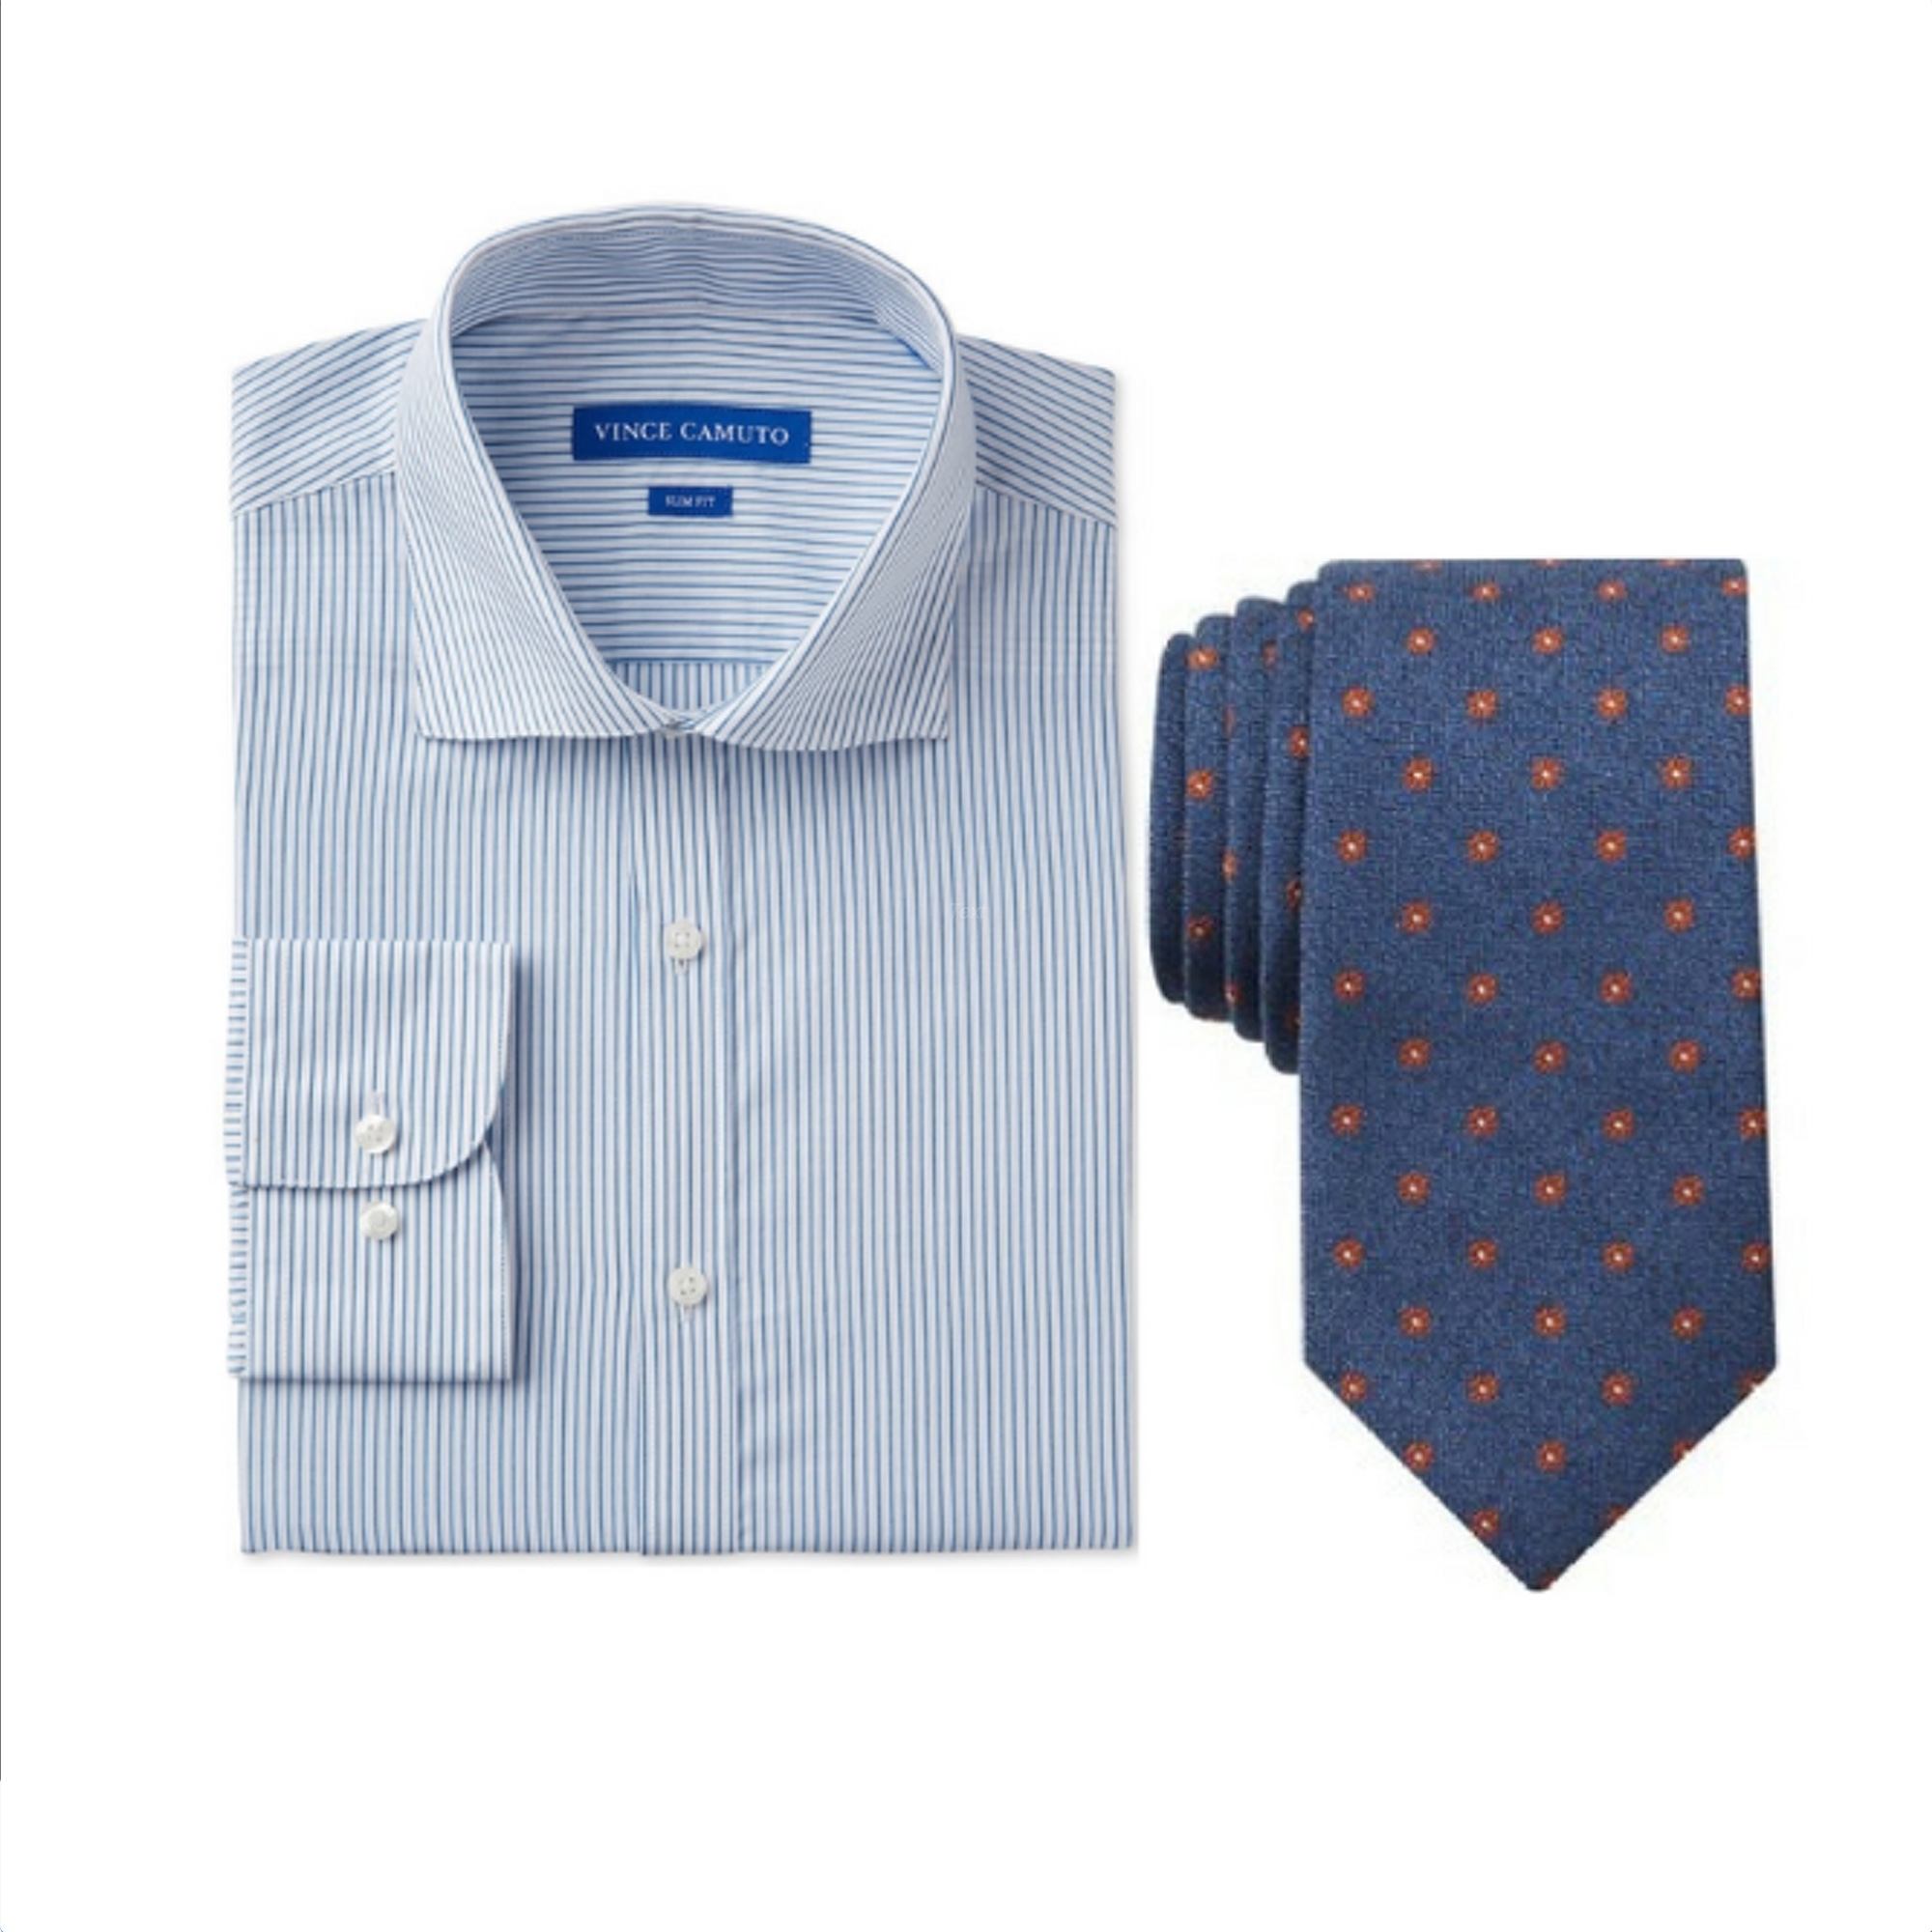 Vince Camuto Shirt + Brooks Brothers Tie